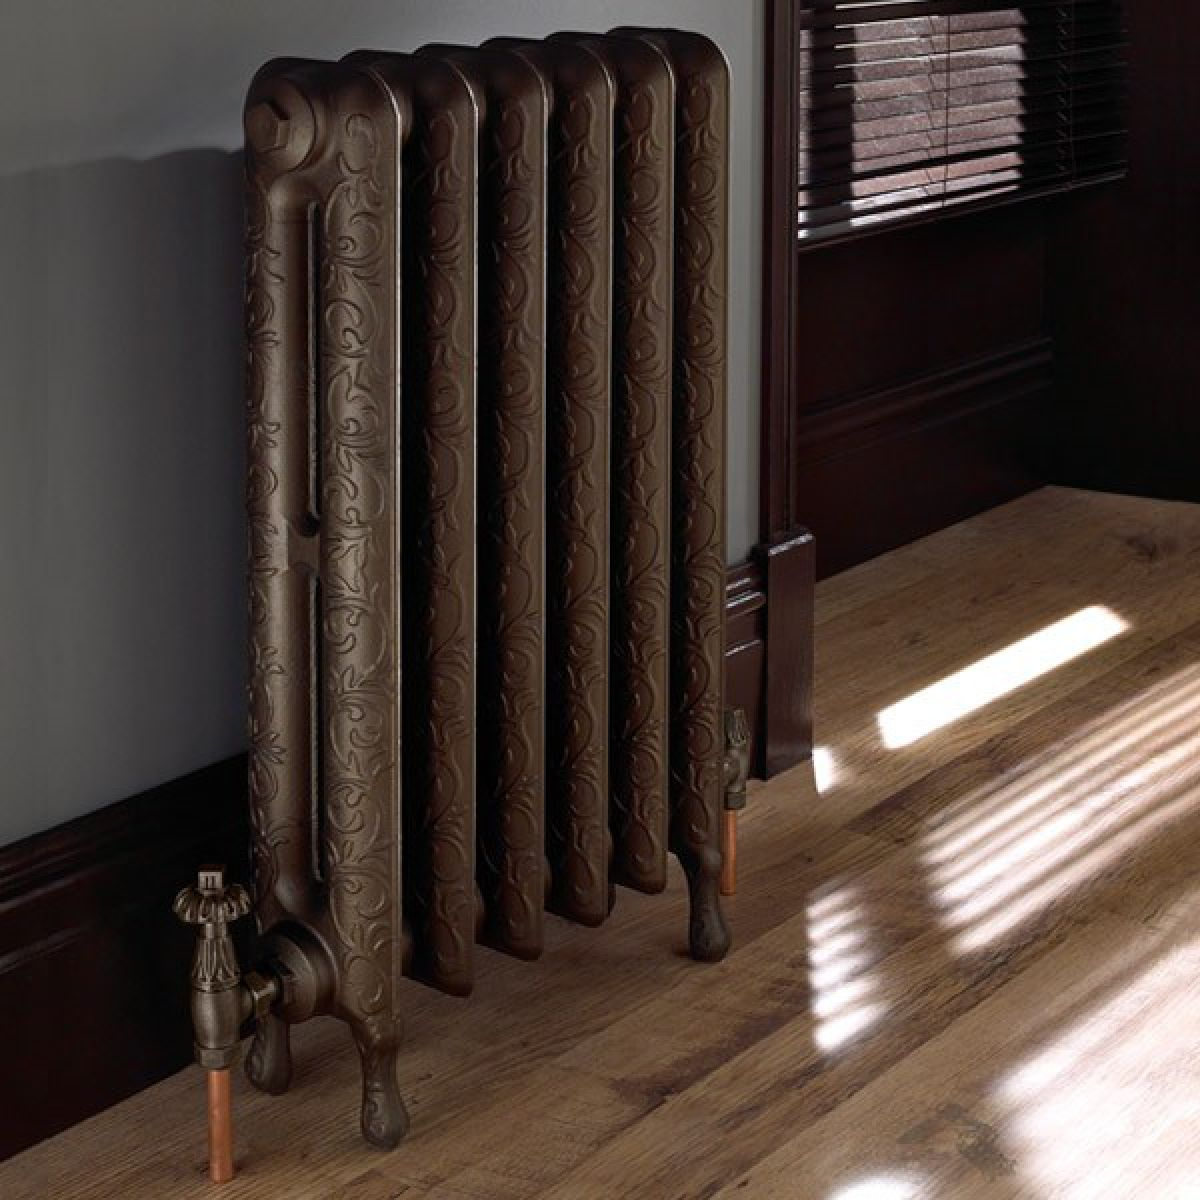 Imperial Tumba Cast Iron Radiator 6 Bar Uk Bathrooms